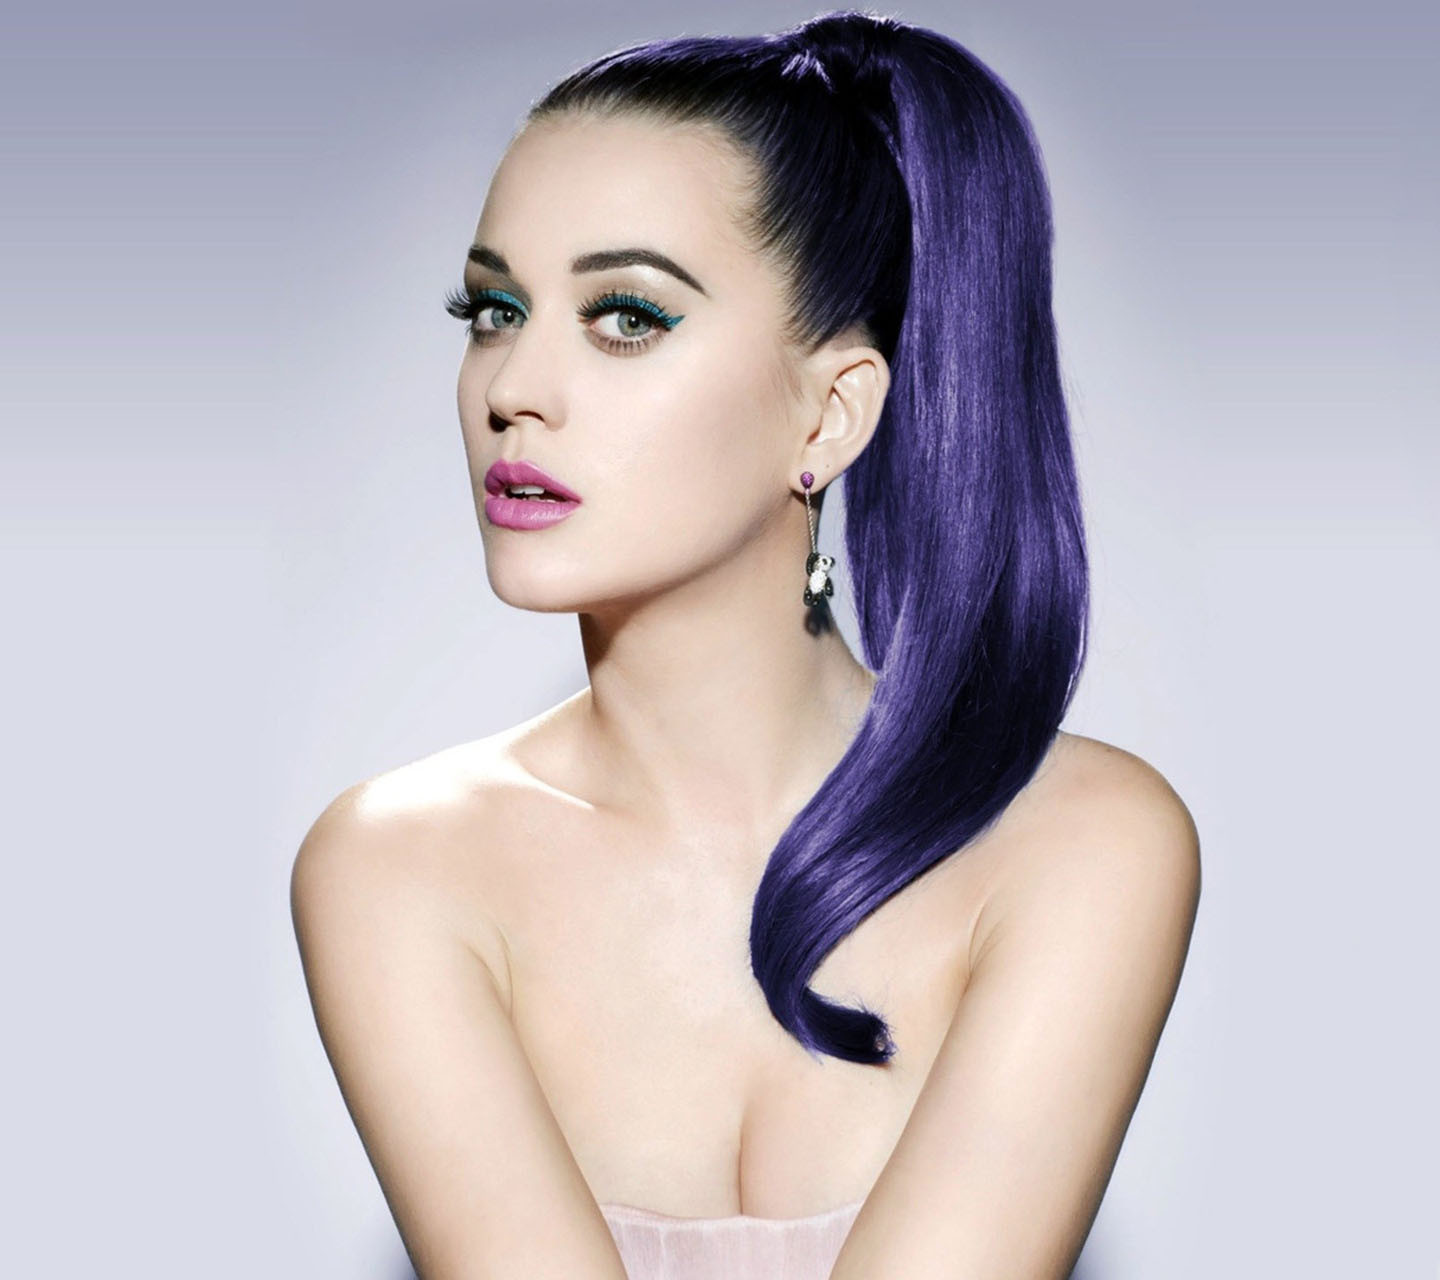 World's 10 Most Powerful Celebrities In 2014 - 9. Katy Perry - $40 million